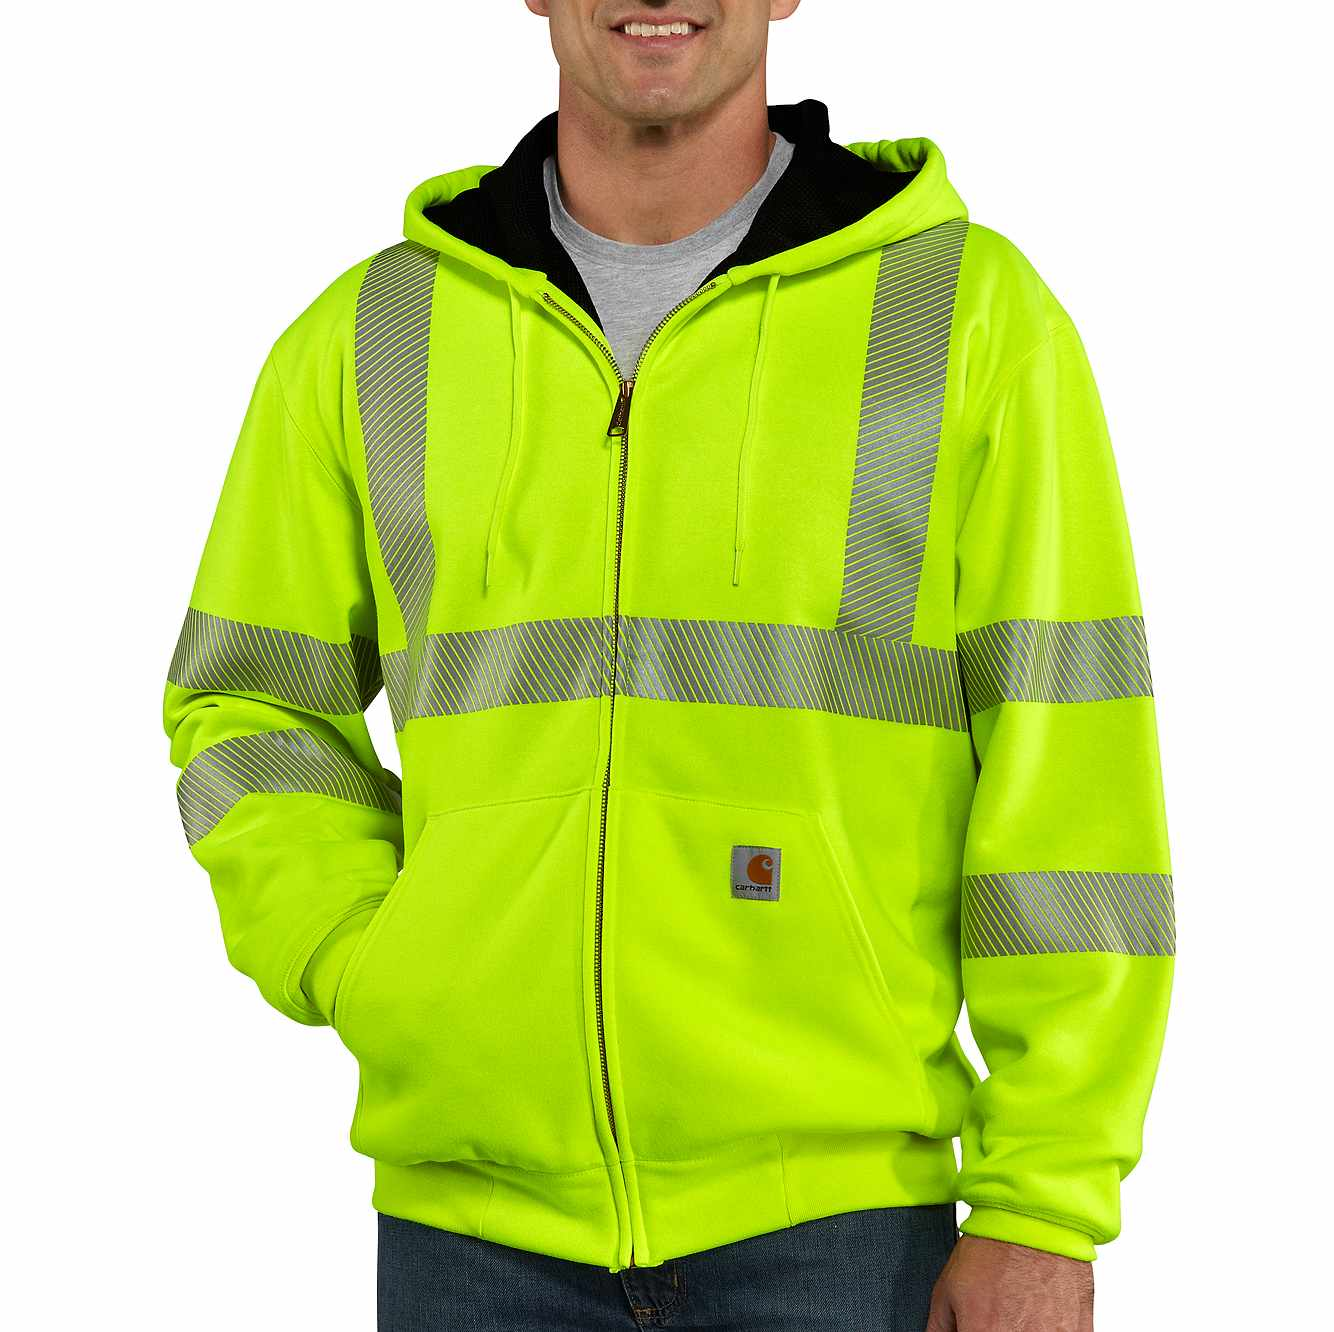 Picture of High-Visibility Zip-Front Class 3 Thermal-Lined Sweatshirt in Brite Lime